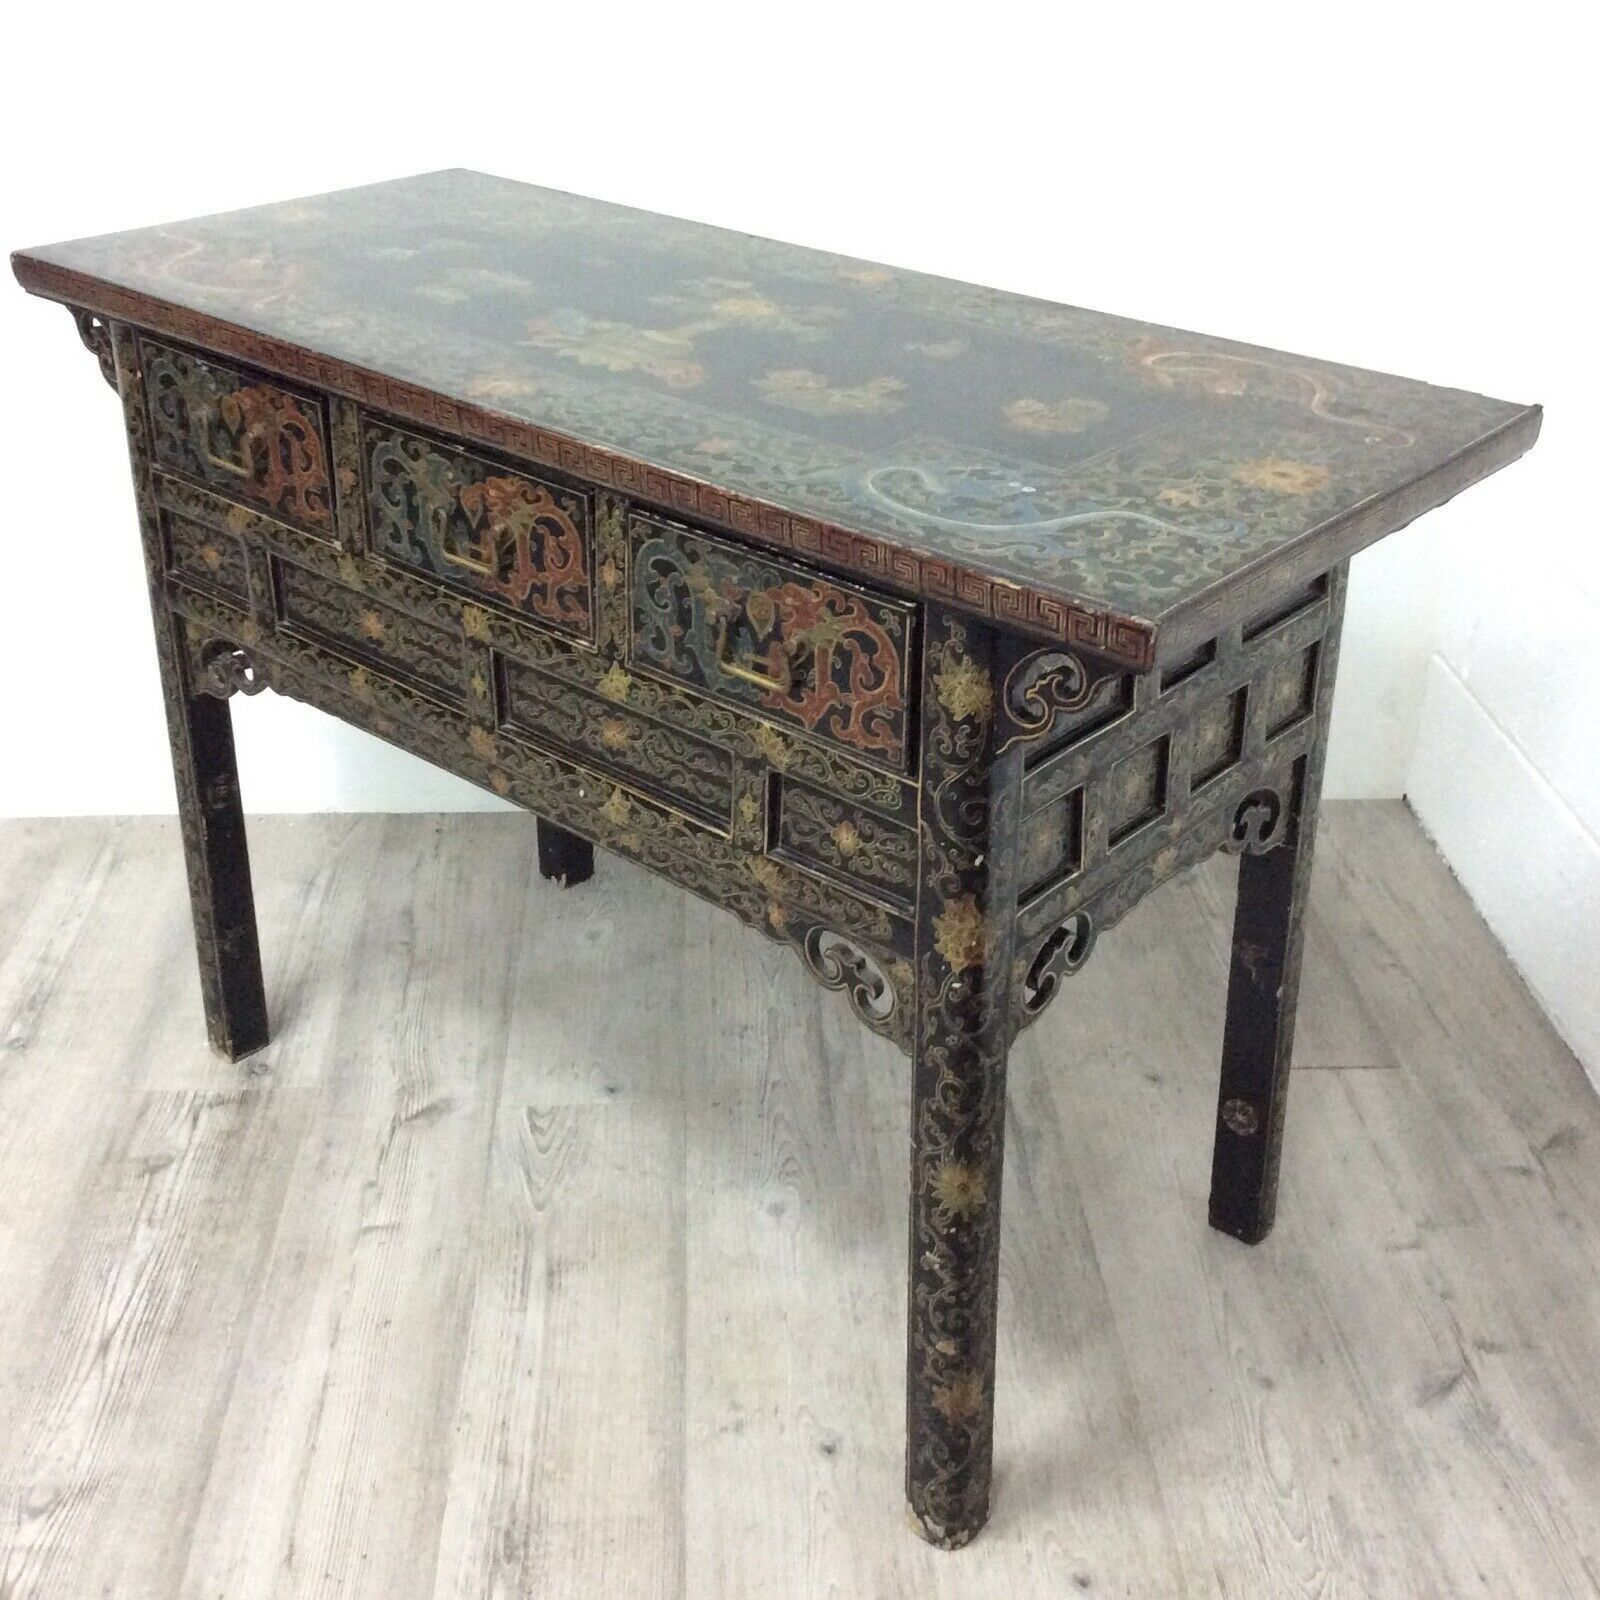 Side Table Chinees.Antique Chinese Side Table Black Lacquer Cabinet With Hand Painted Panels